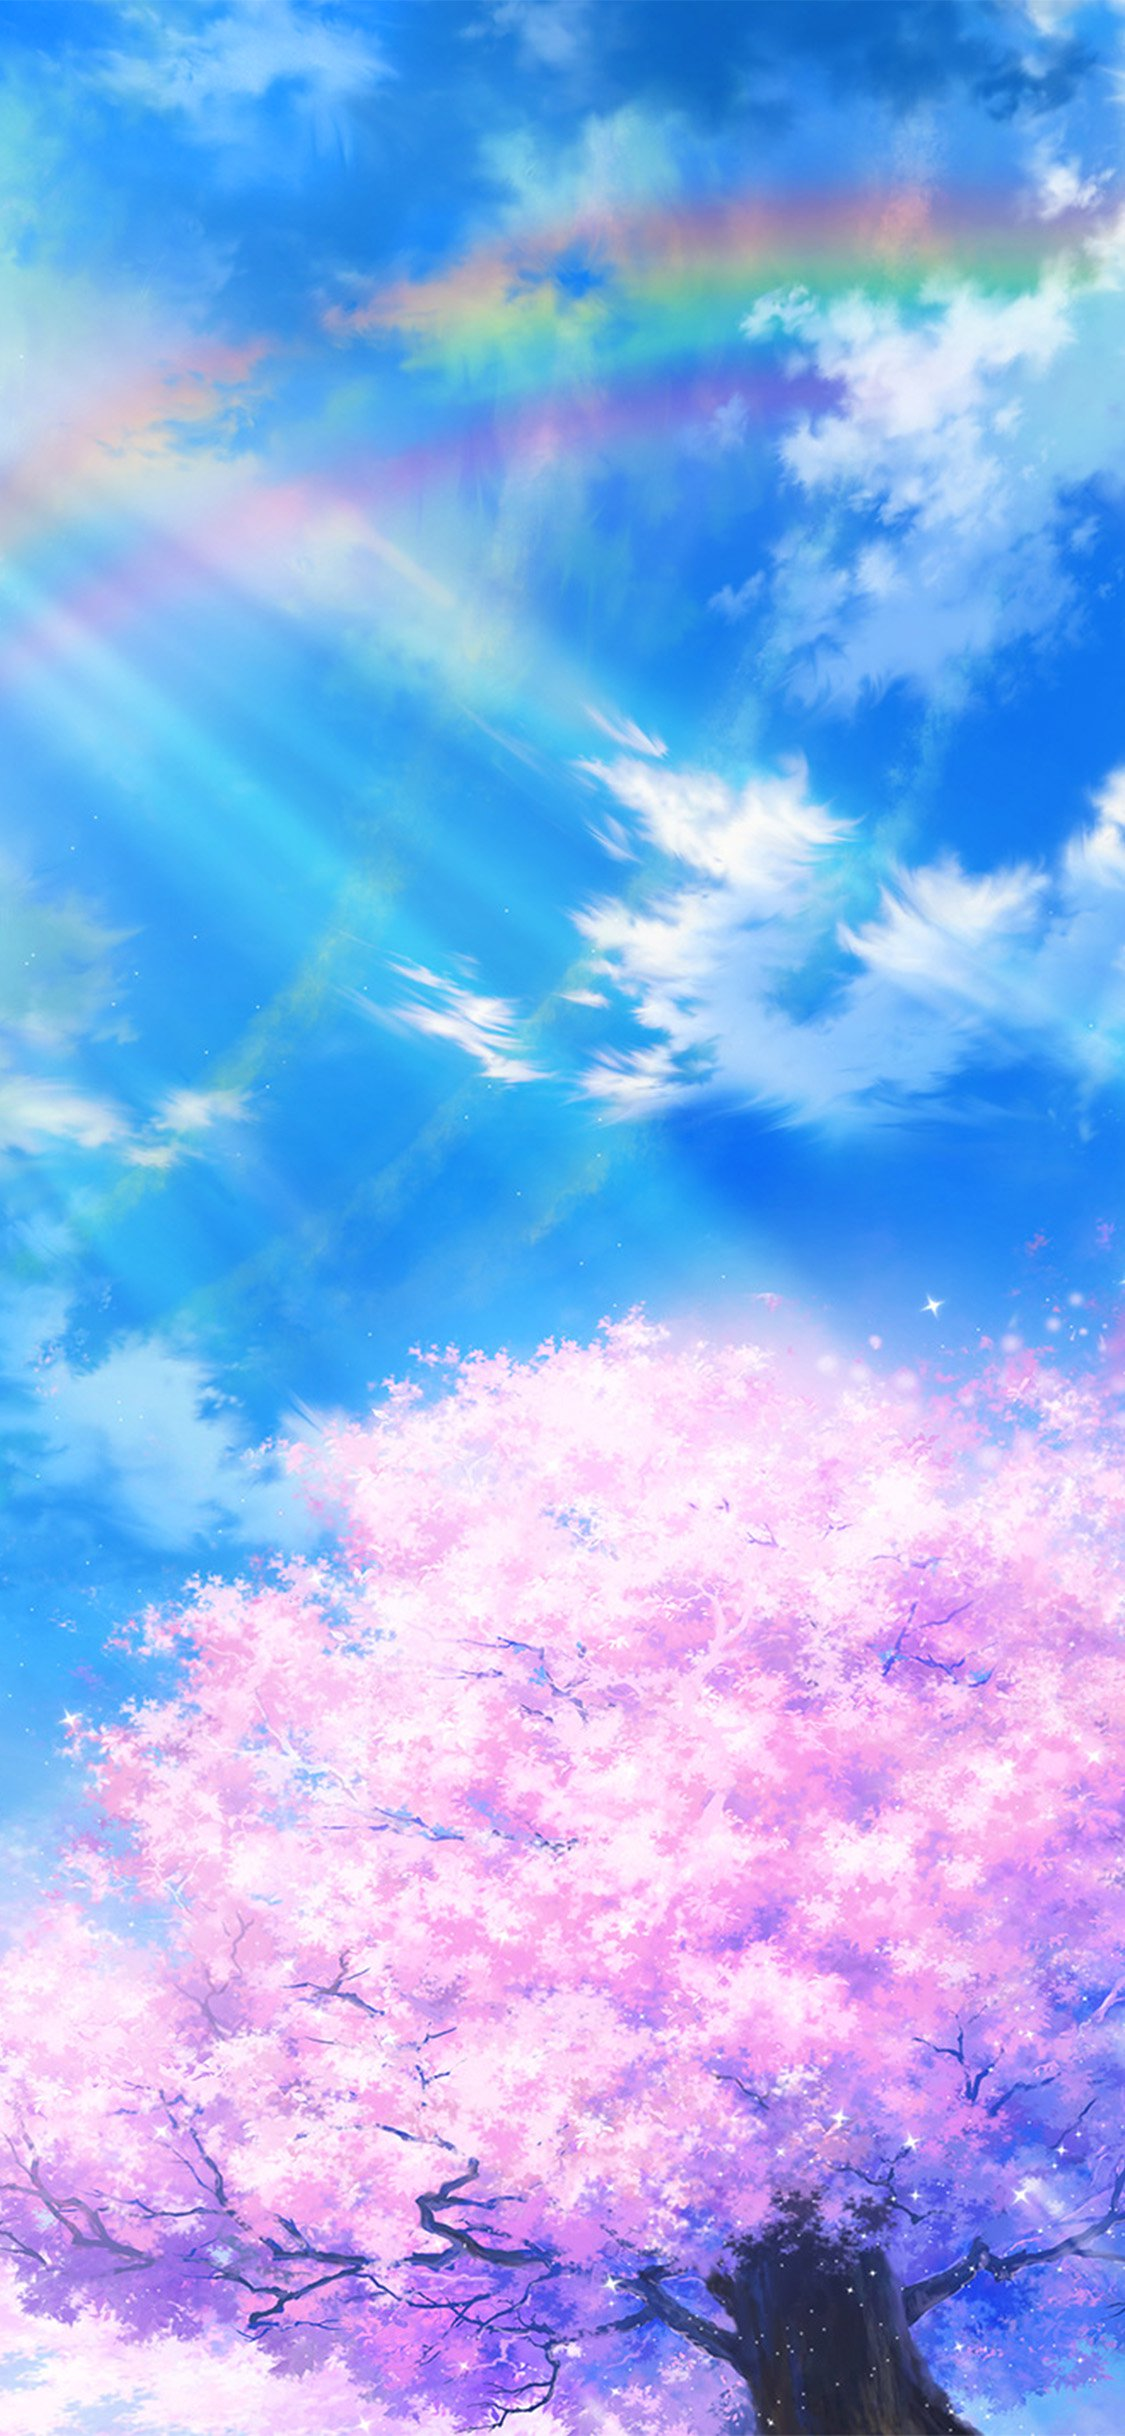 Anime Sky Cloud Spring Art Illustration Iphone X Wallpapers Free